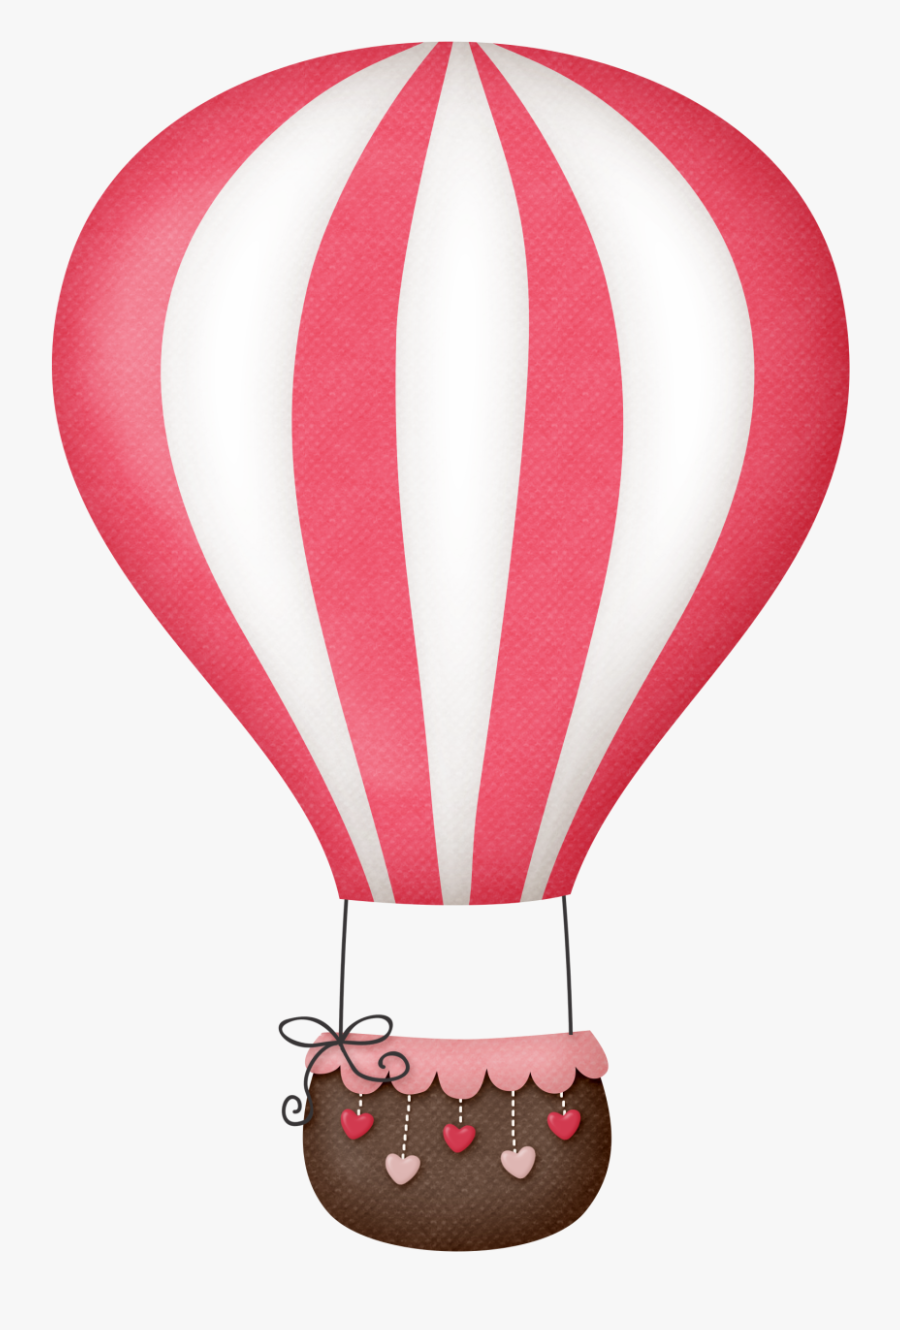 Sky With Sun And Hot Air Balloons Clipart - Pink Hot Air Balloon Clipart, Transparent Clipart